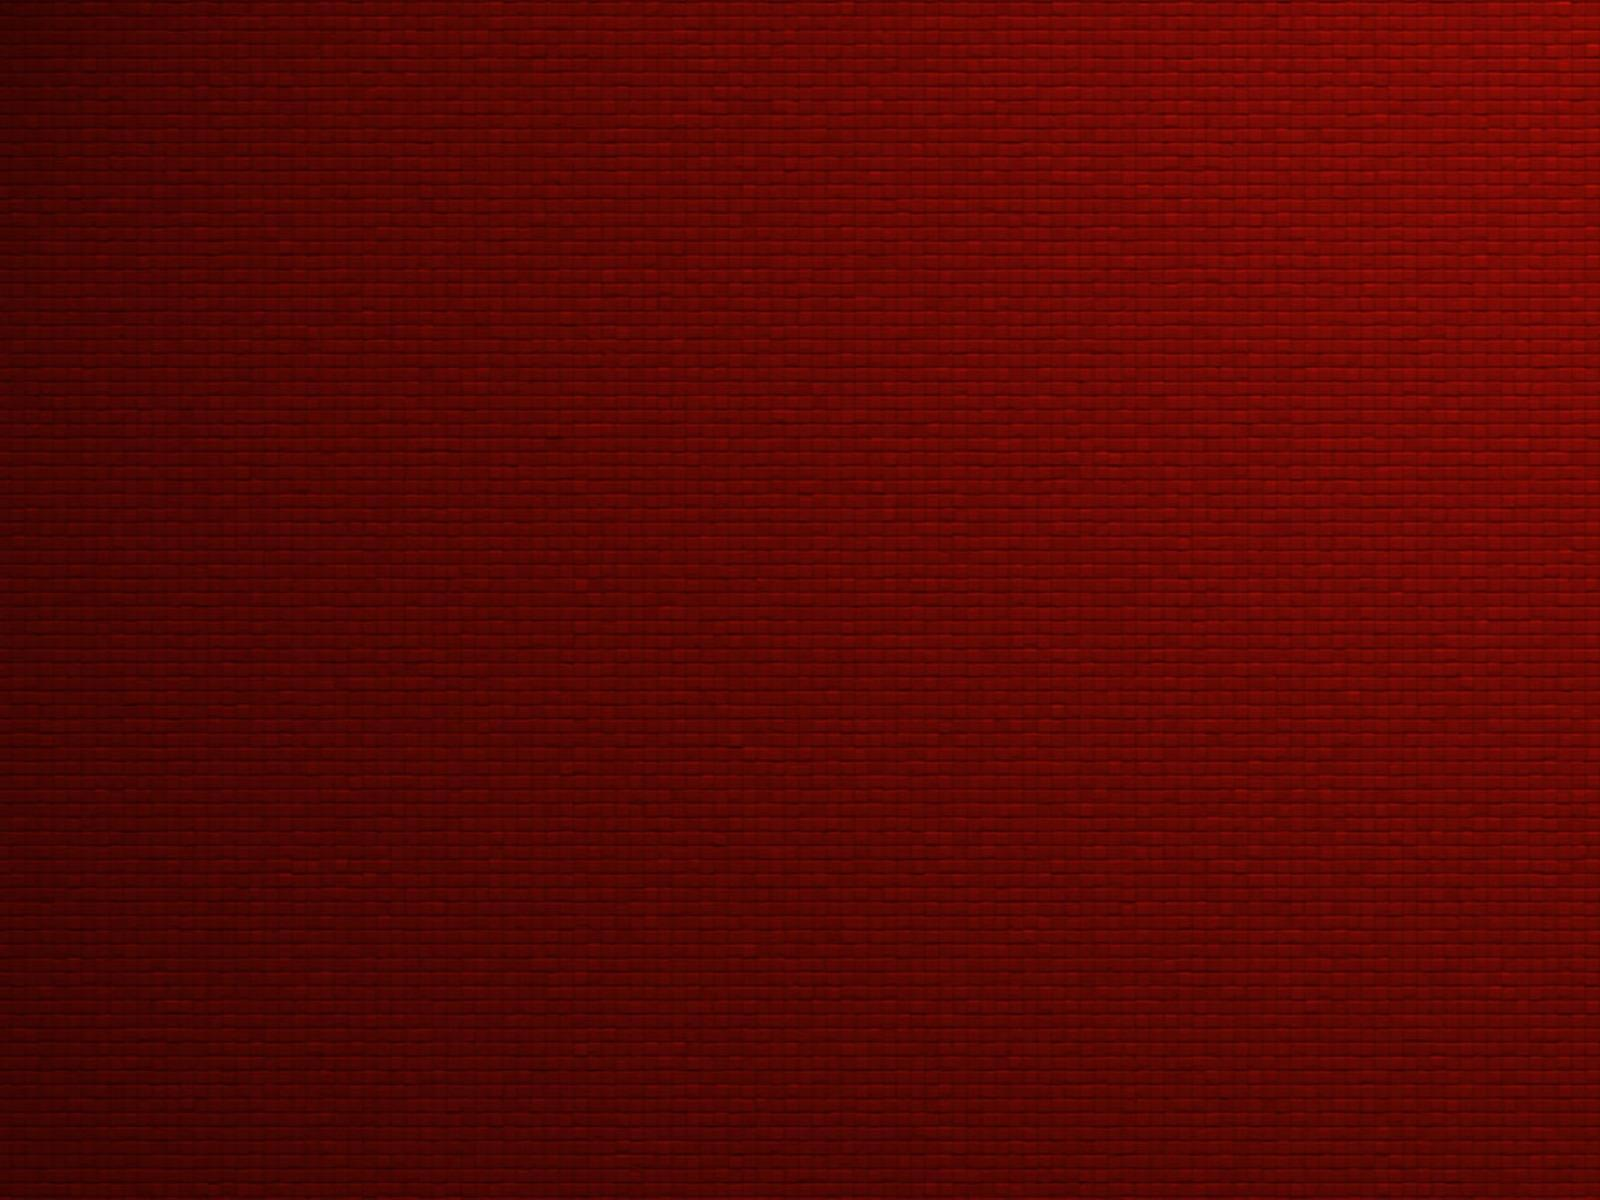 1600x1200 | Red Desktop Wallpaper | Abstract Red Wallpaper